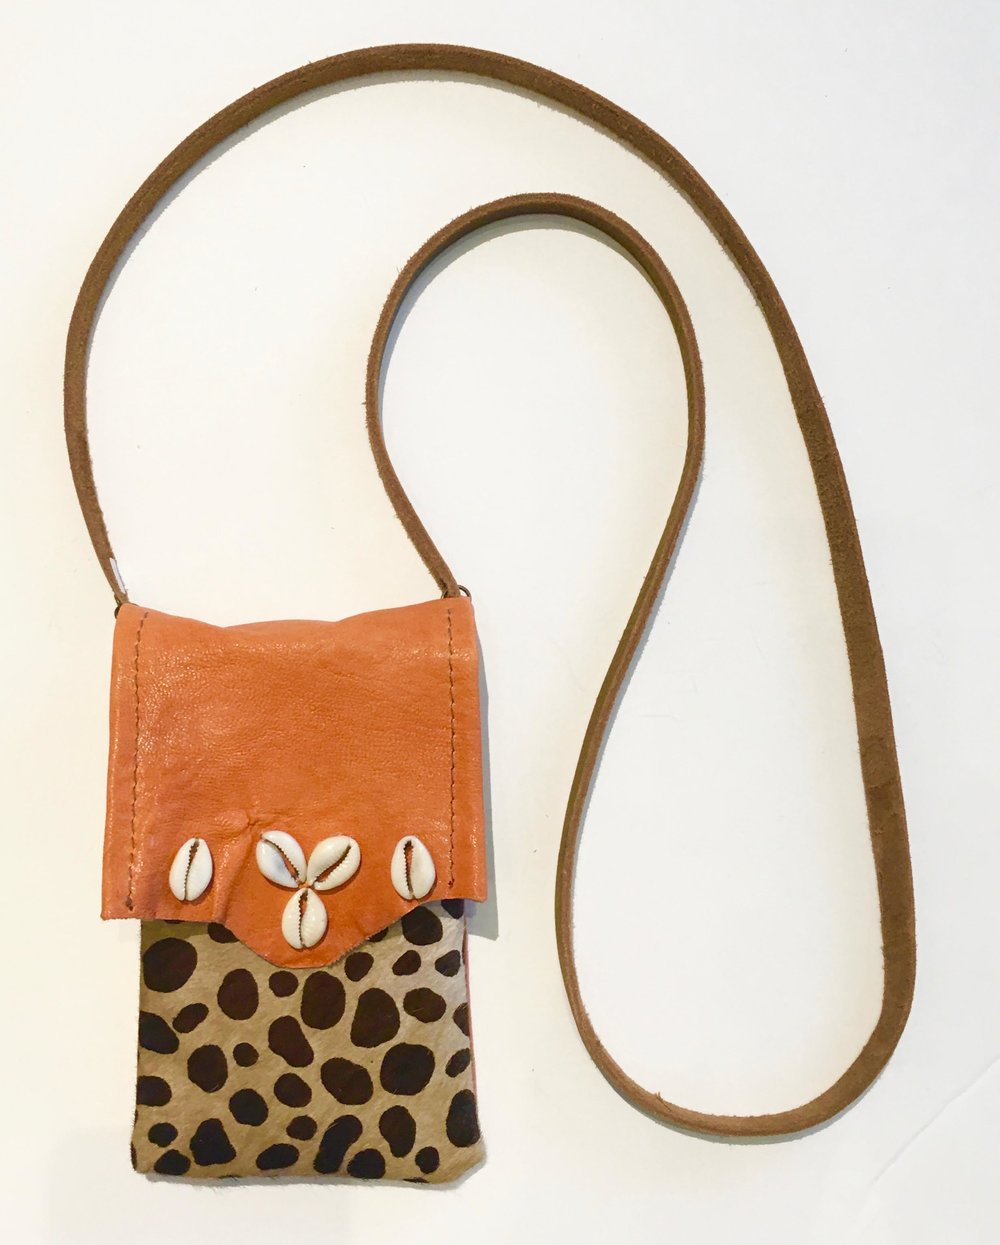 Hair on hide cross body bag with coral lambskin flap embellished with seashells.  $128..jpg